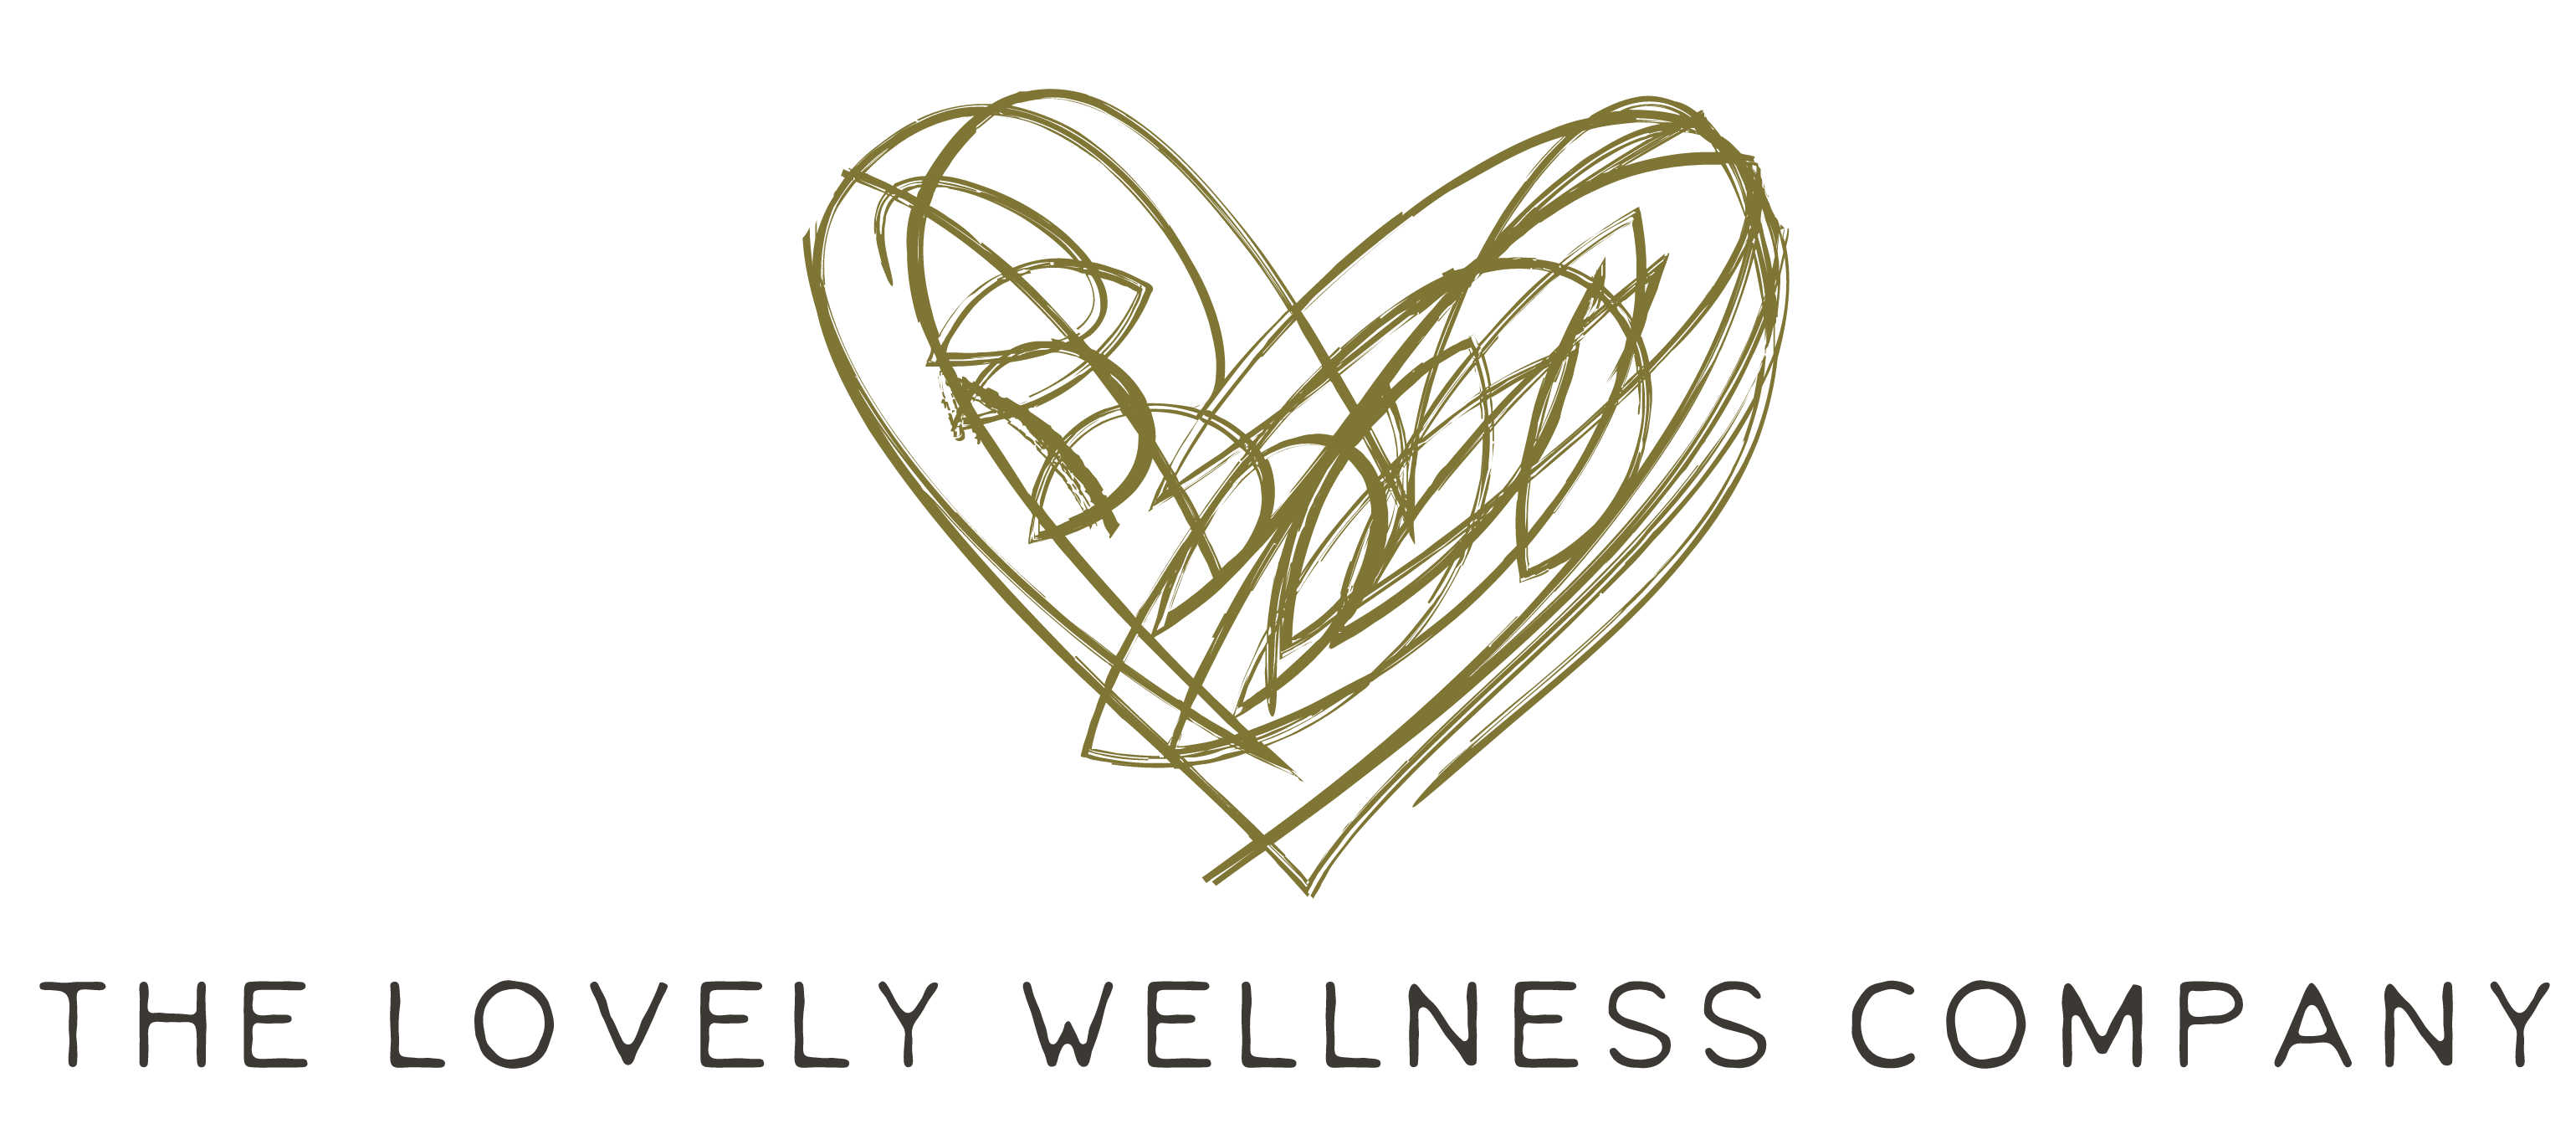 The Lovely Wellness Company